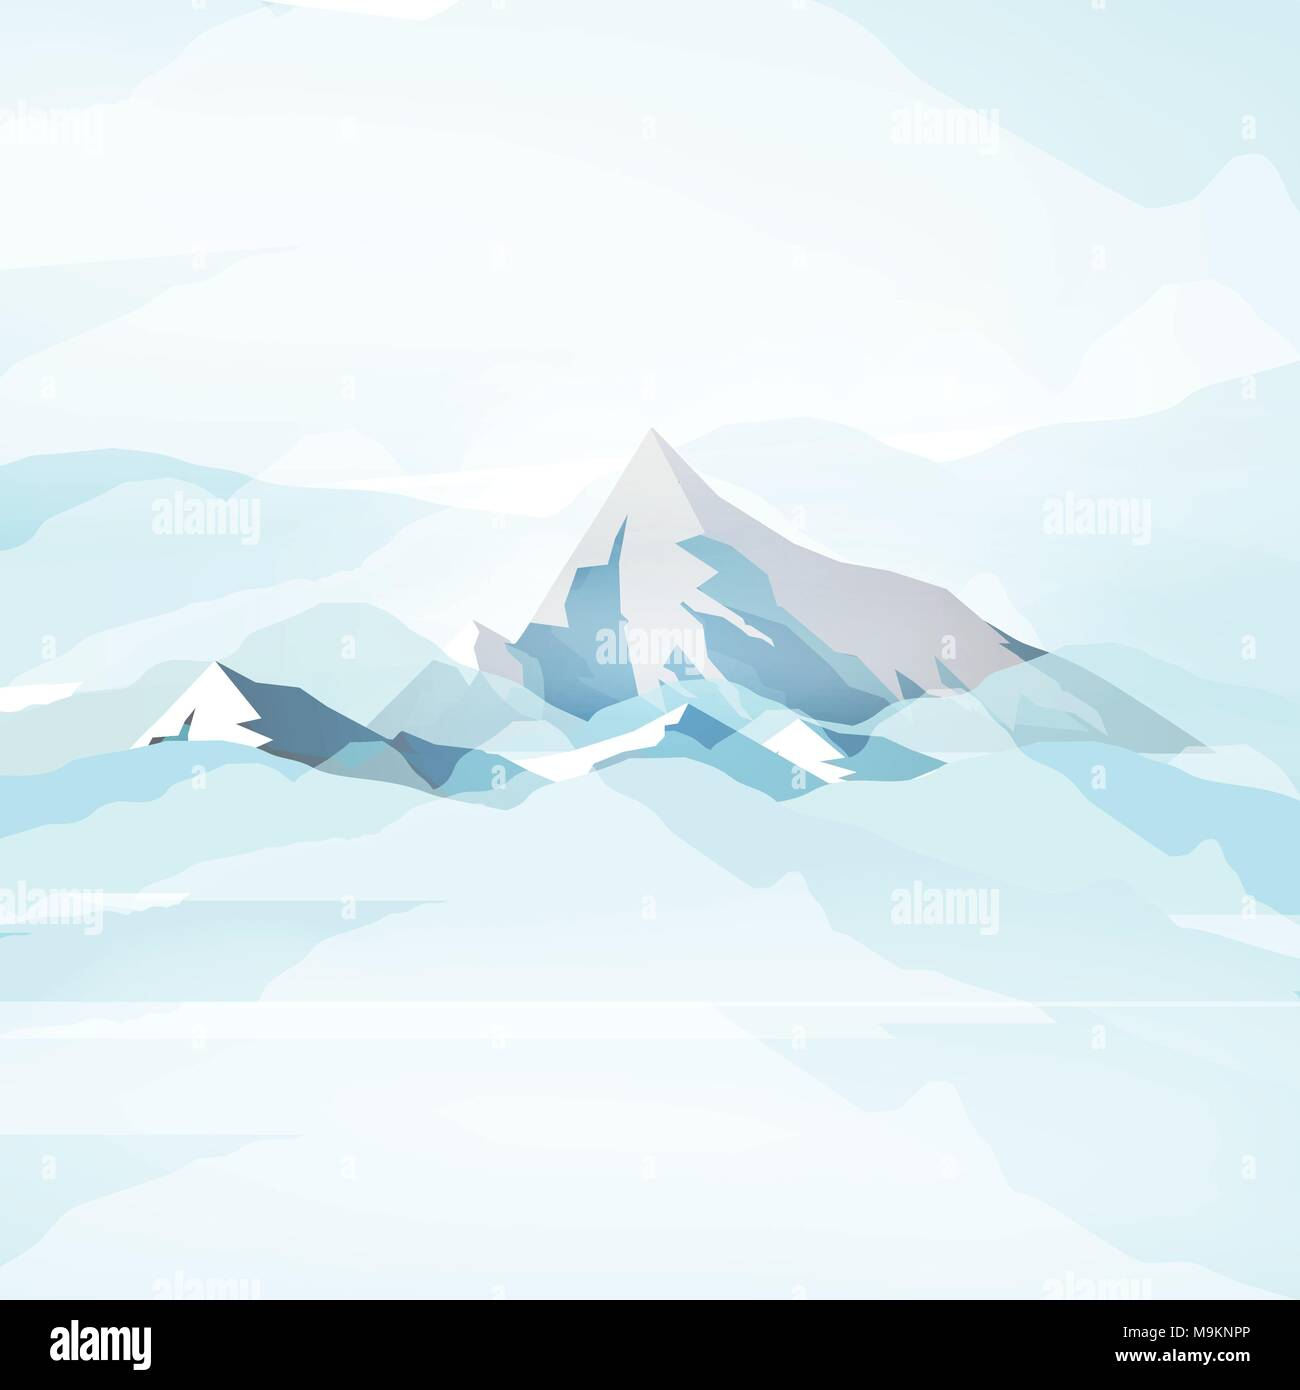 Winter High Mountains in Clouds - Vector Illustration - Stock Vector